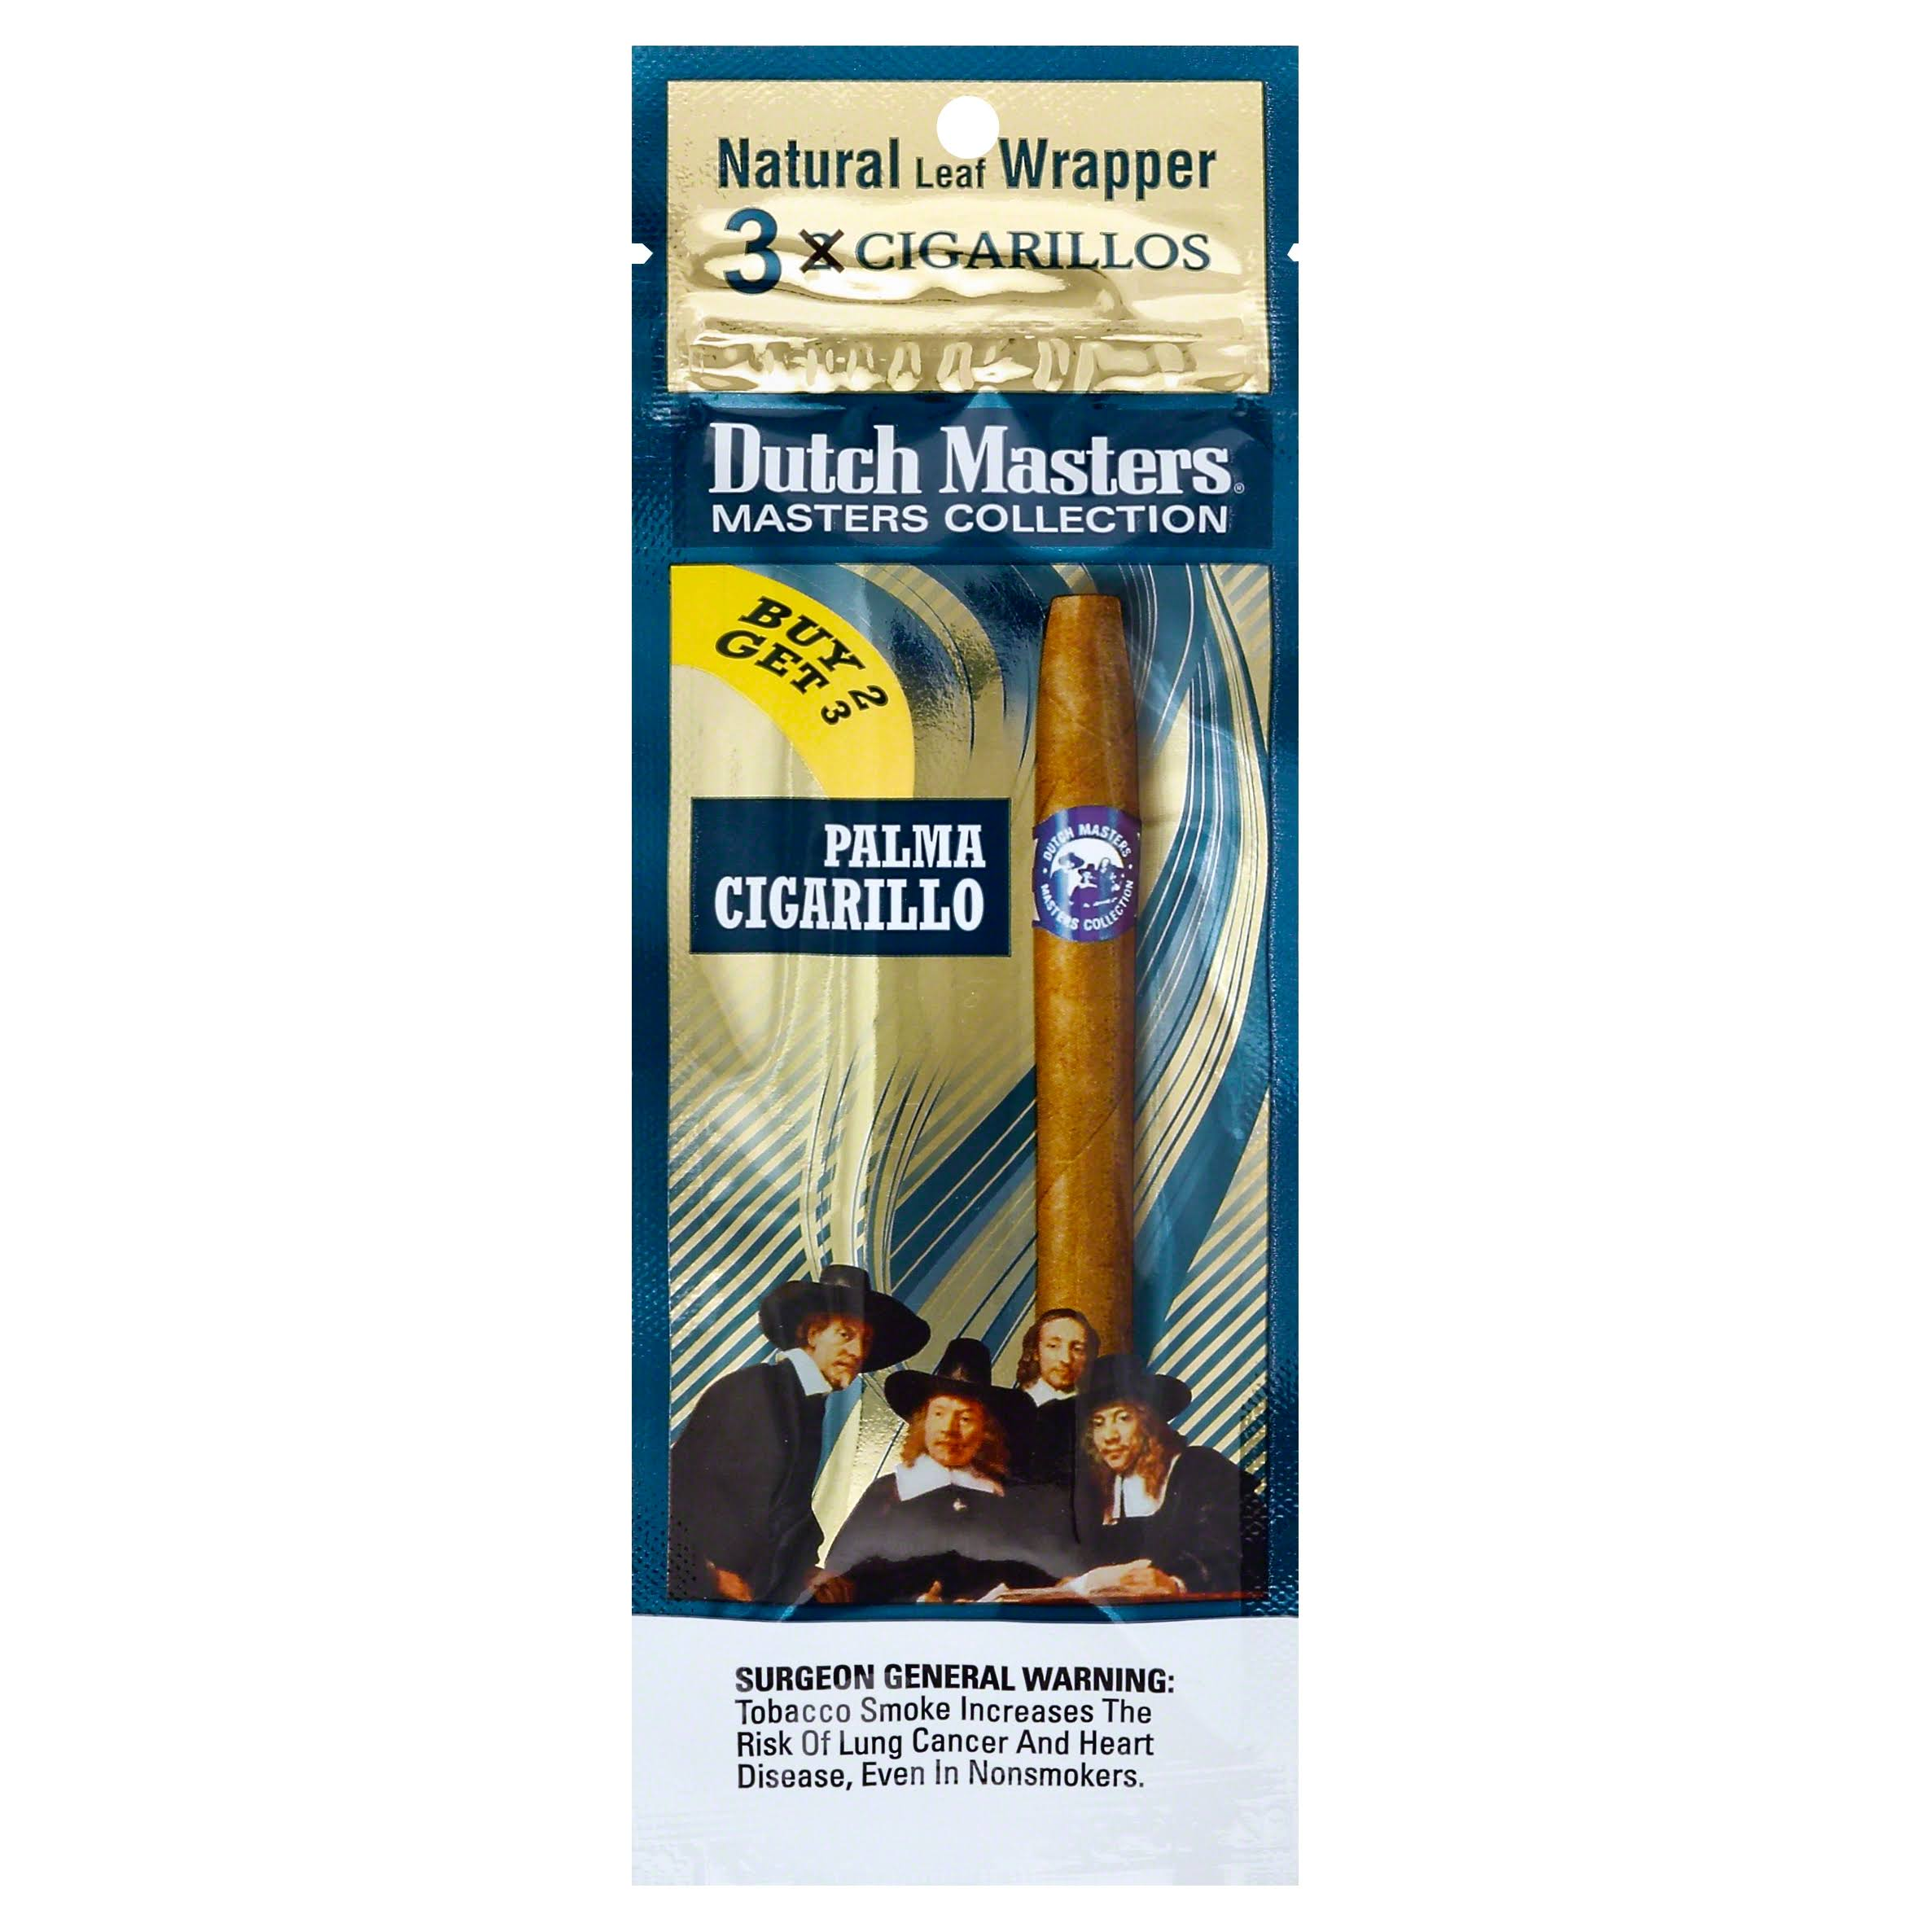 Dutch Masters Masters Collection Cigarillos - 3 cigarillos